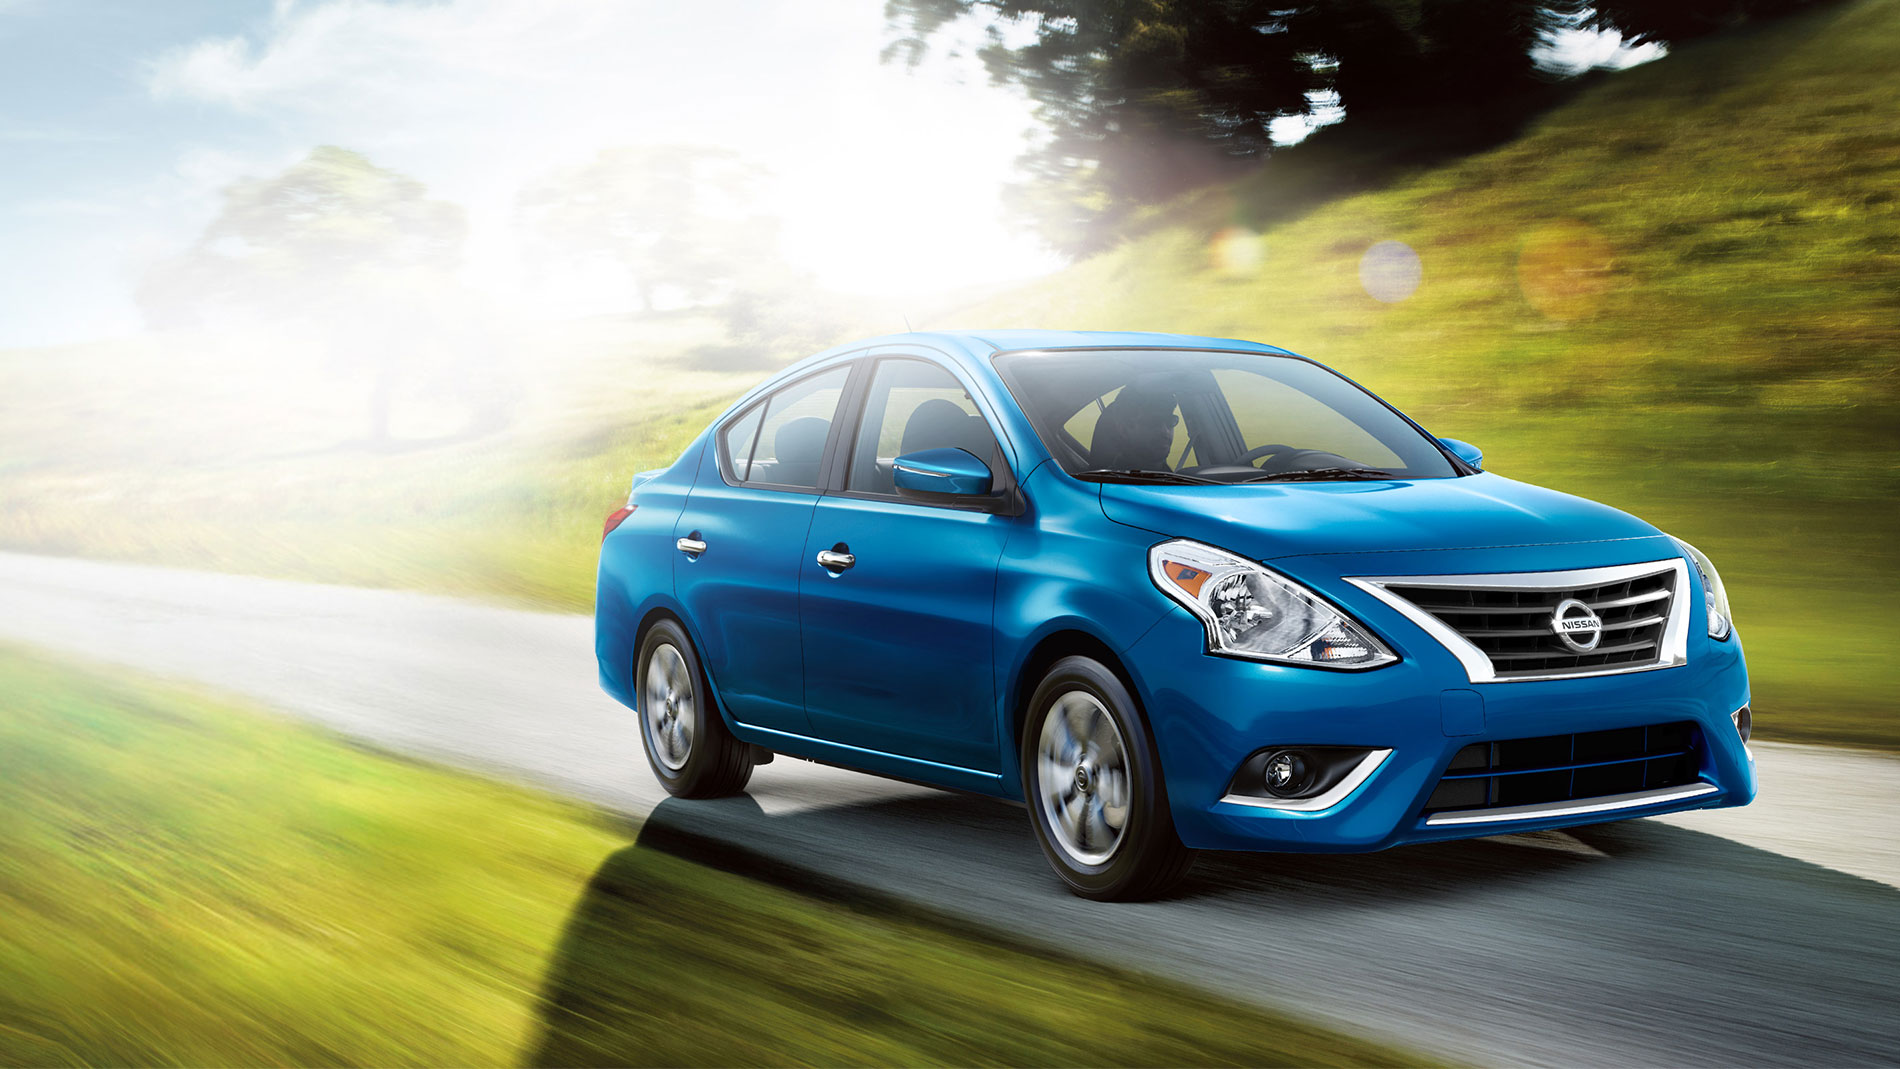 in photos sale mesa large fwd nissan versa inventory for az